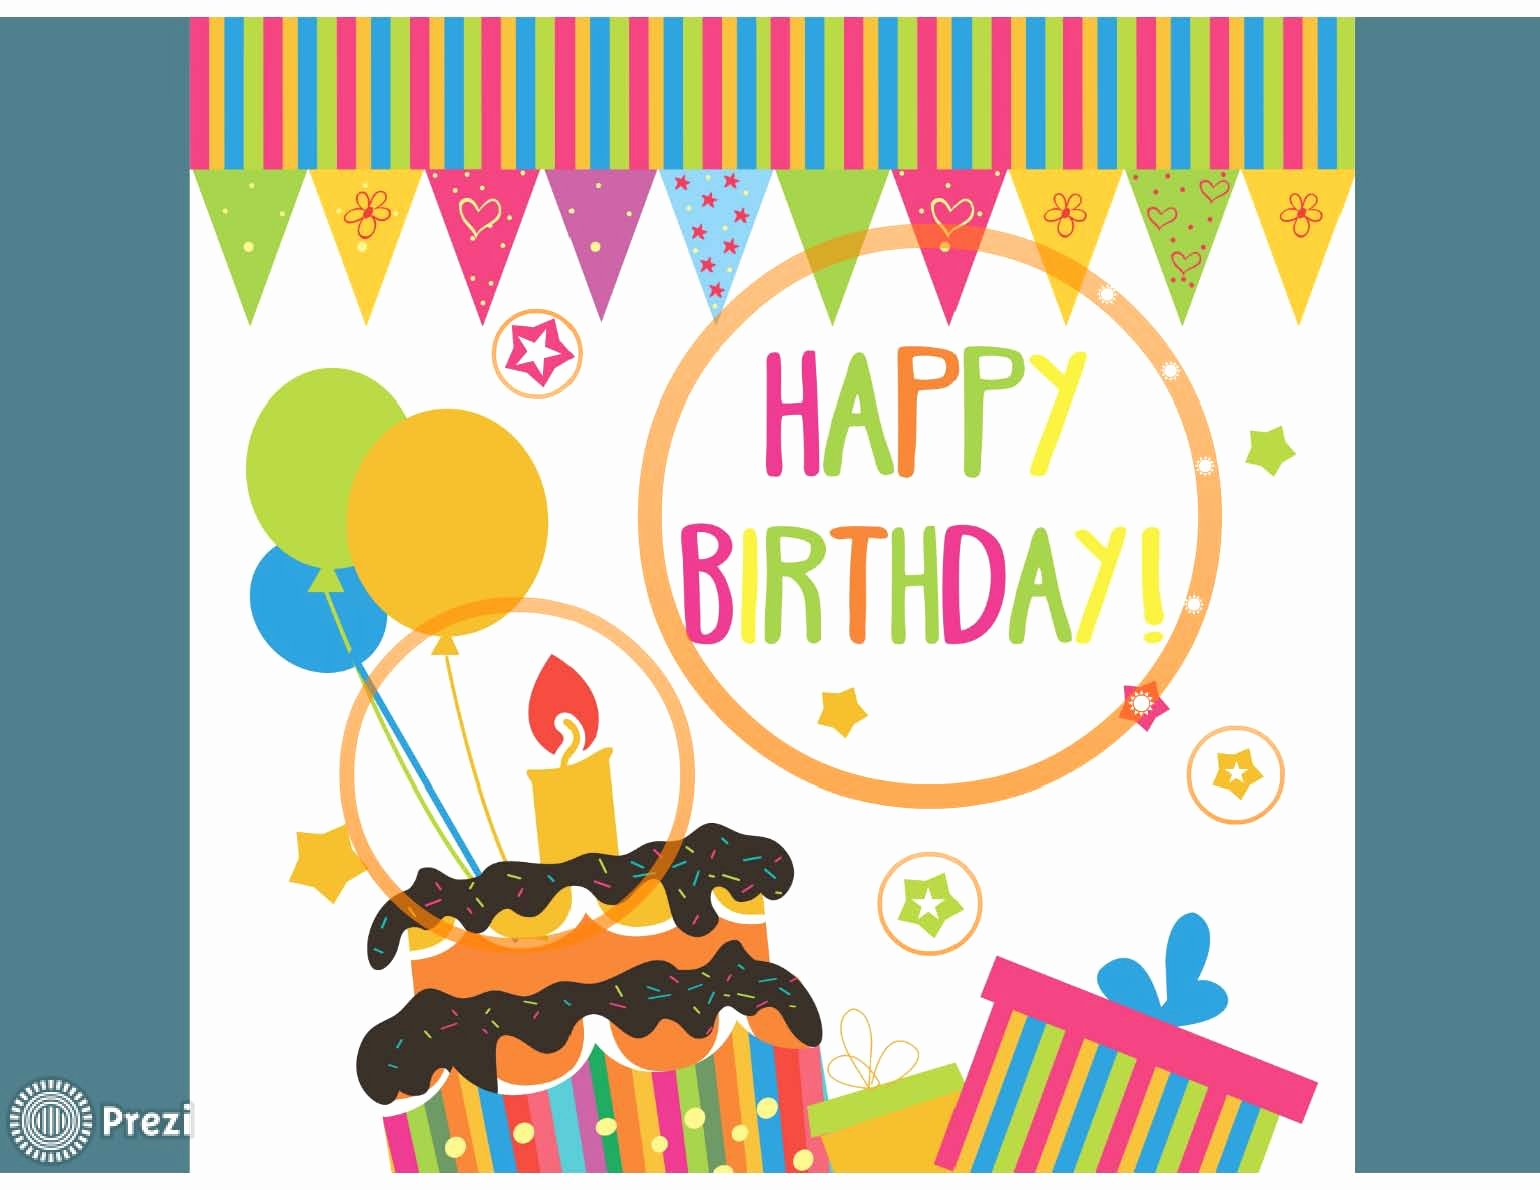 Happy Birthday 4 Prezi Premium Templates